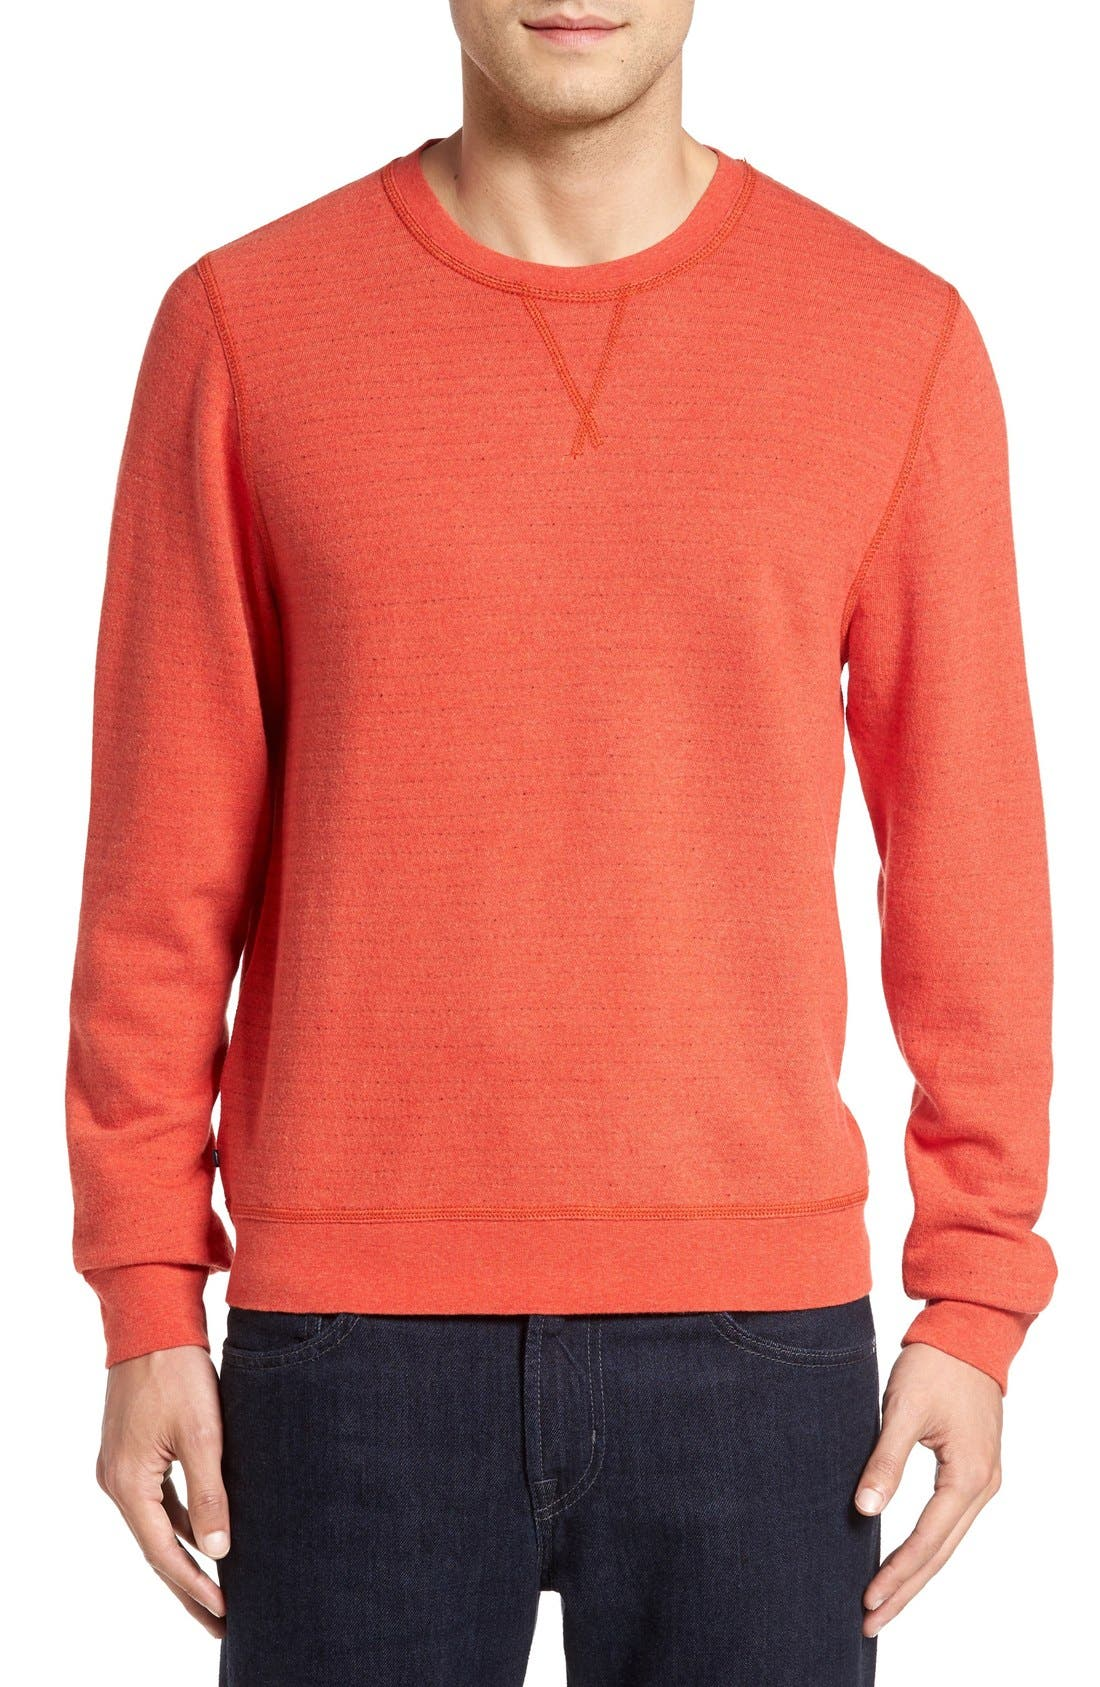 'Gleann' French Terry Crewneck Sweatshirt,                         Main,                         color, Tangine Heather